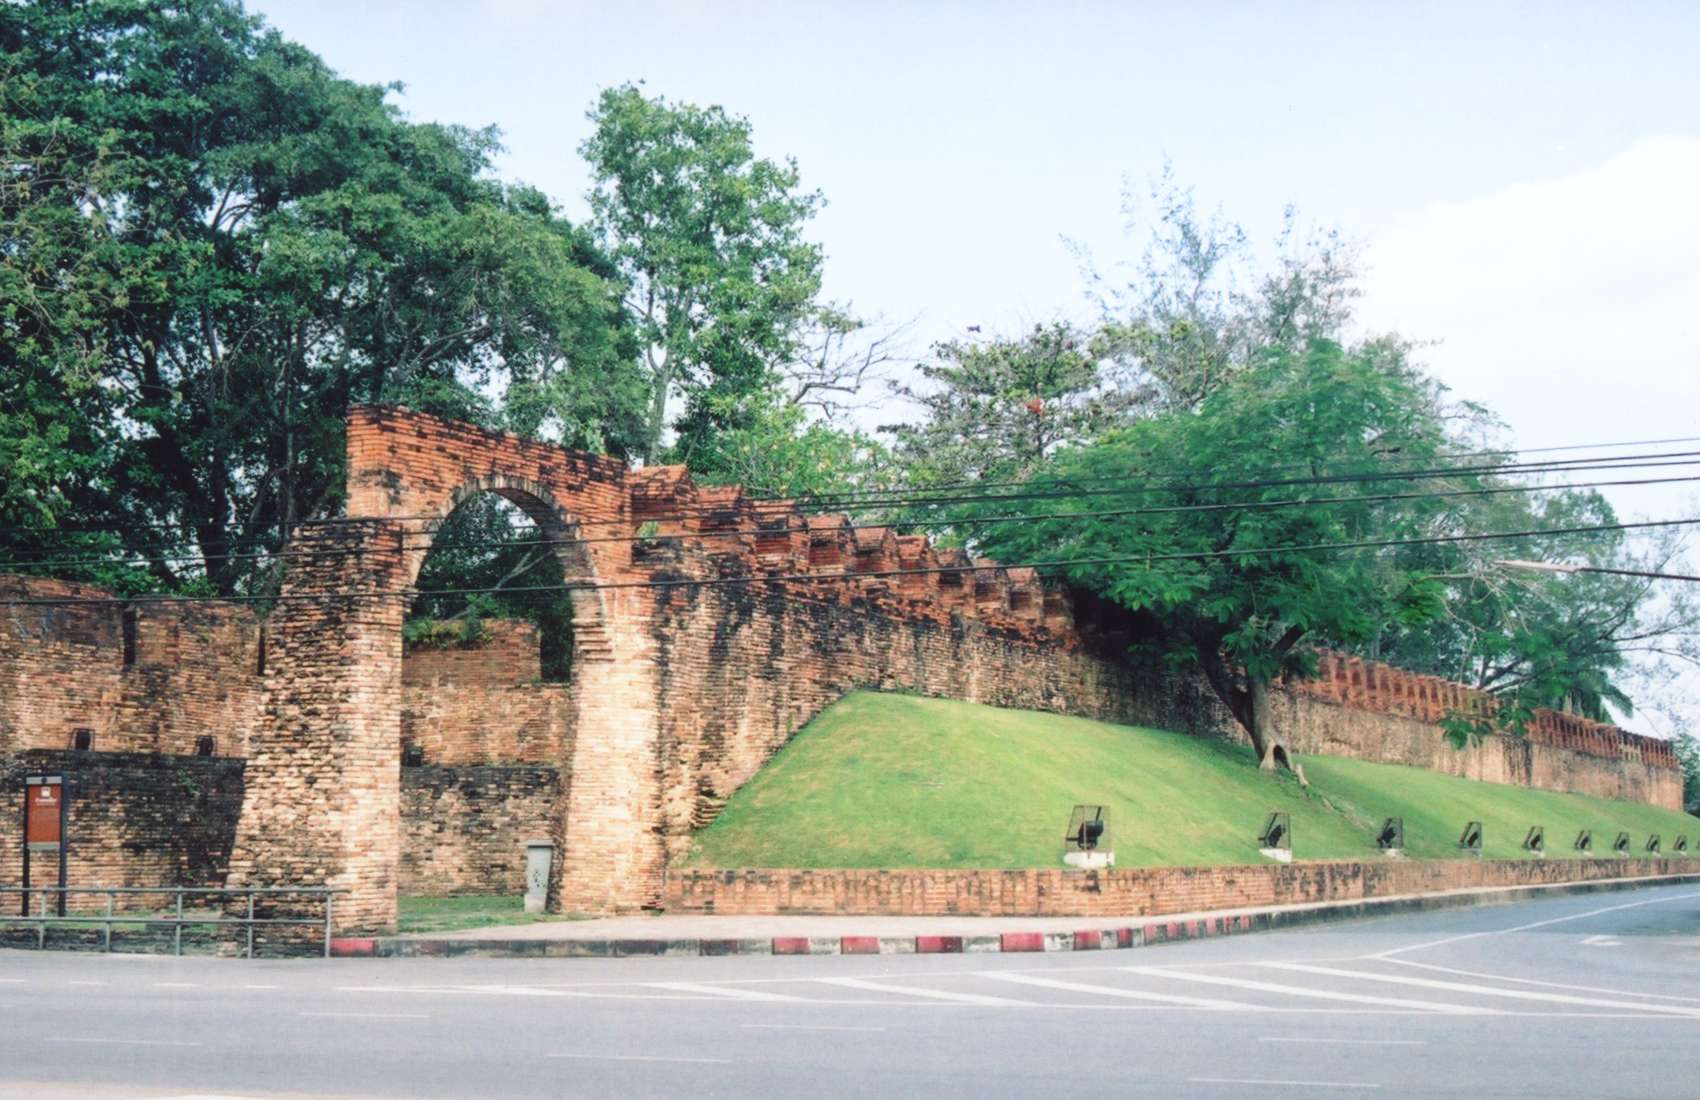 http://upload.wikimedia.org/wikipedia/commons/8/8d/Nakhon_Si_Thammarat_city_wall.jpg